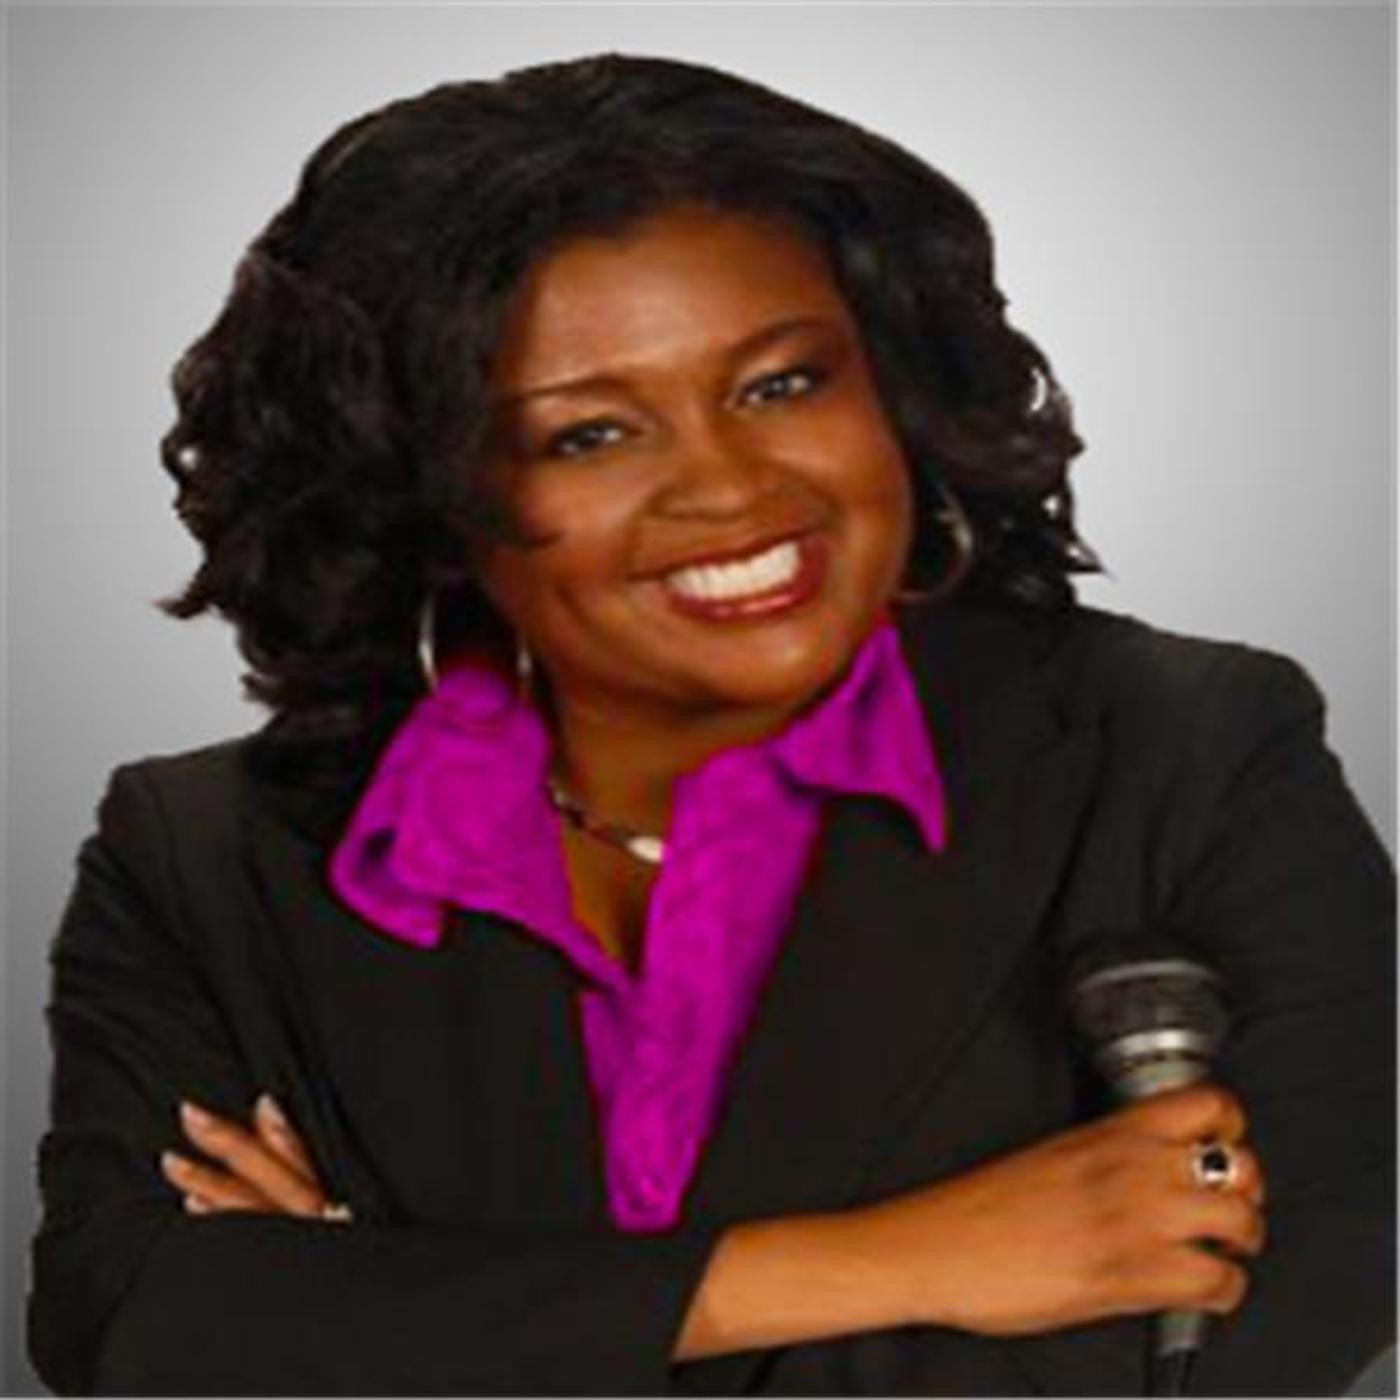 SpeakerTalk with Marquesa Pettway, DTM, Speaker, SpeakerCoach